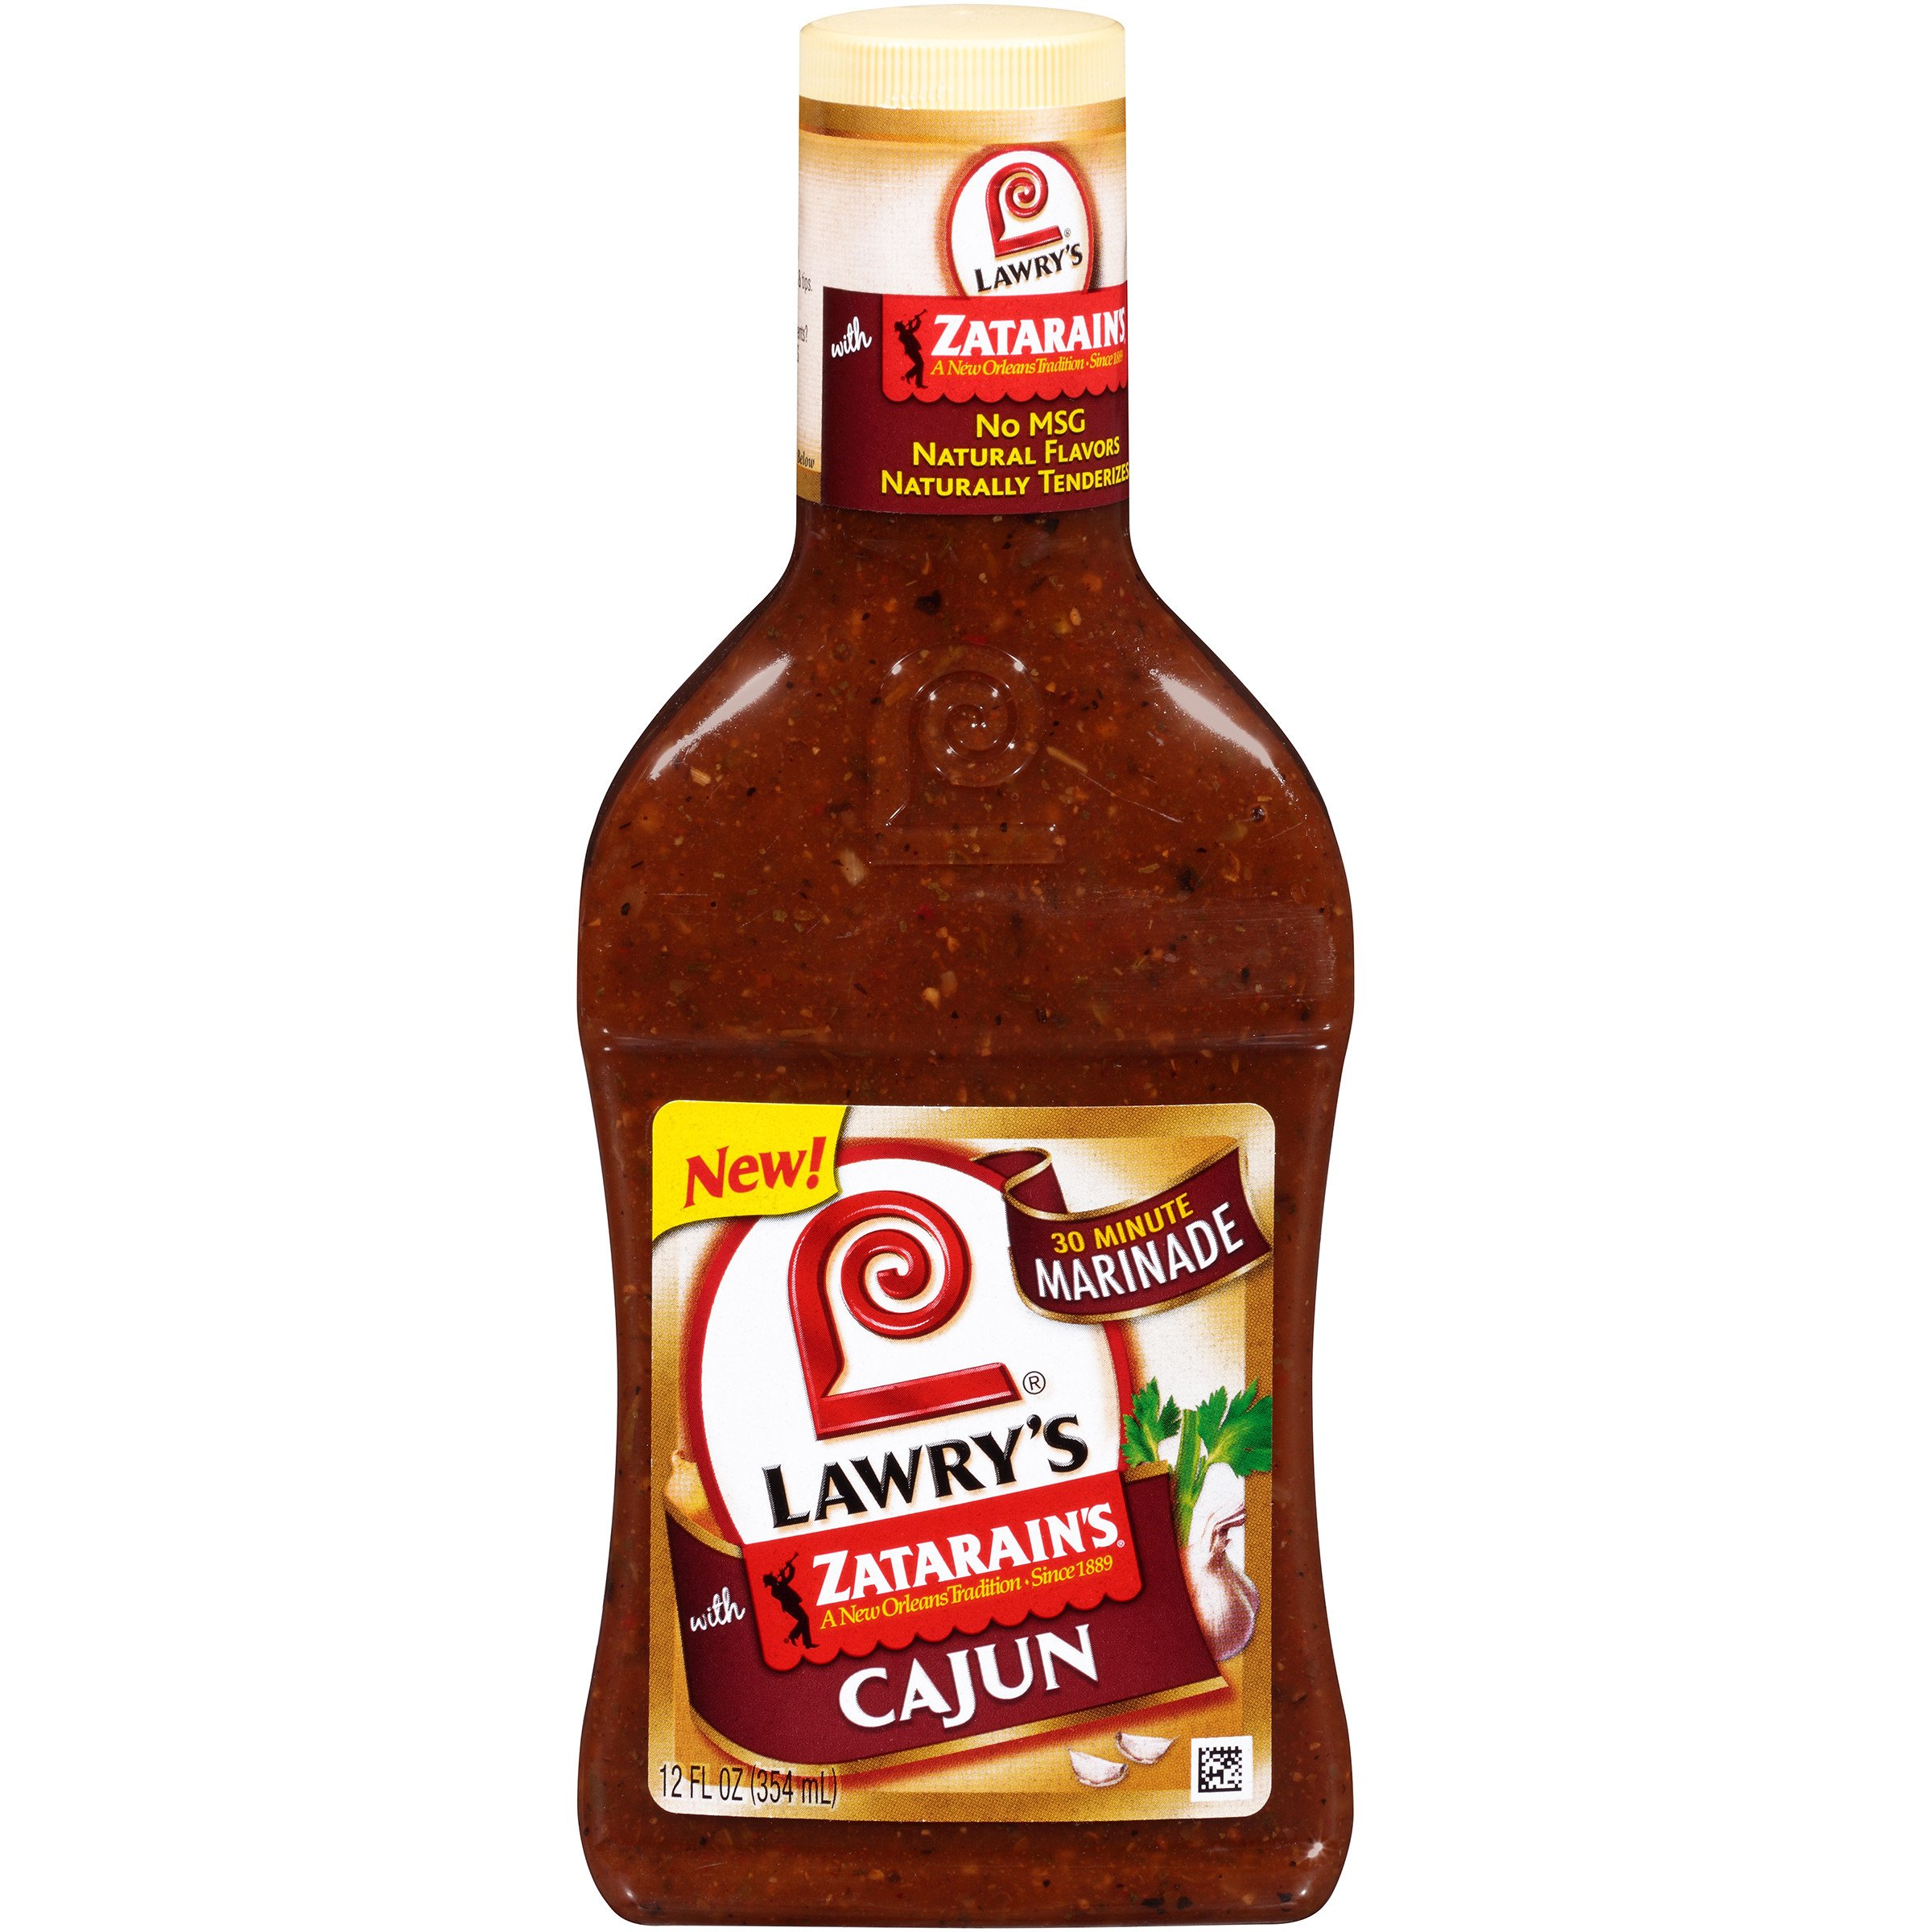 Lawry's Cajun with Zatarain's Seasoning 30 Minute Marinade, 12 oz